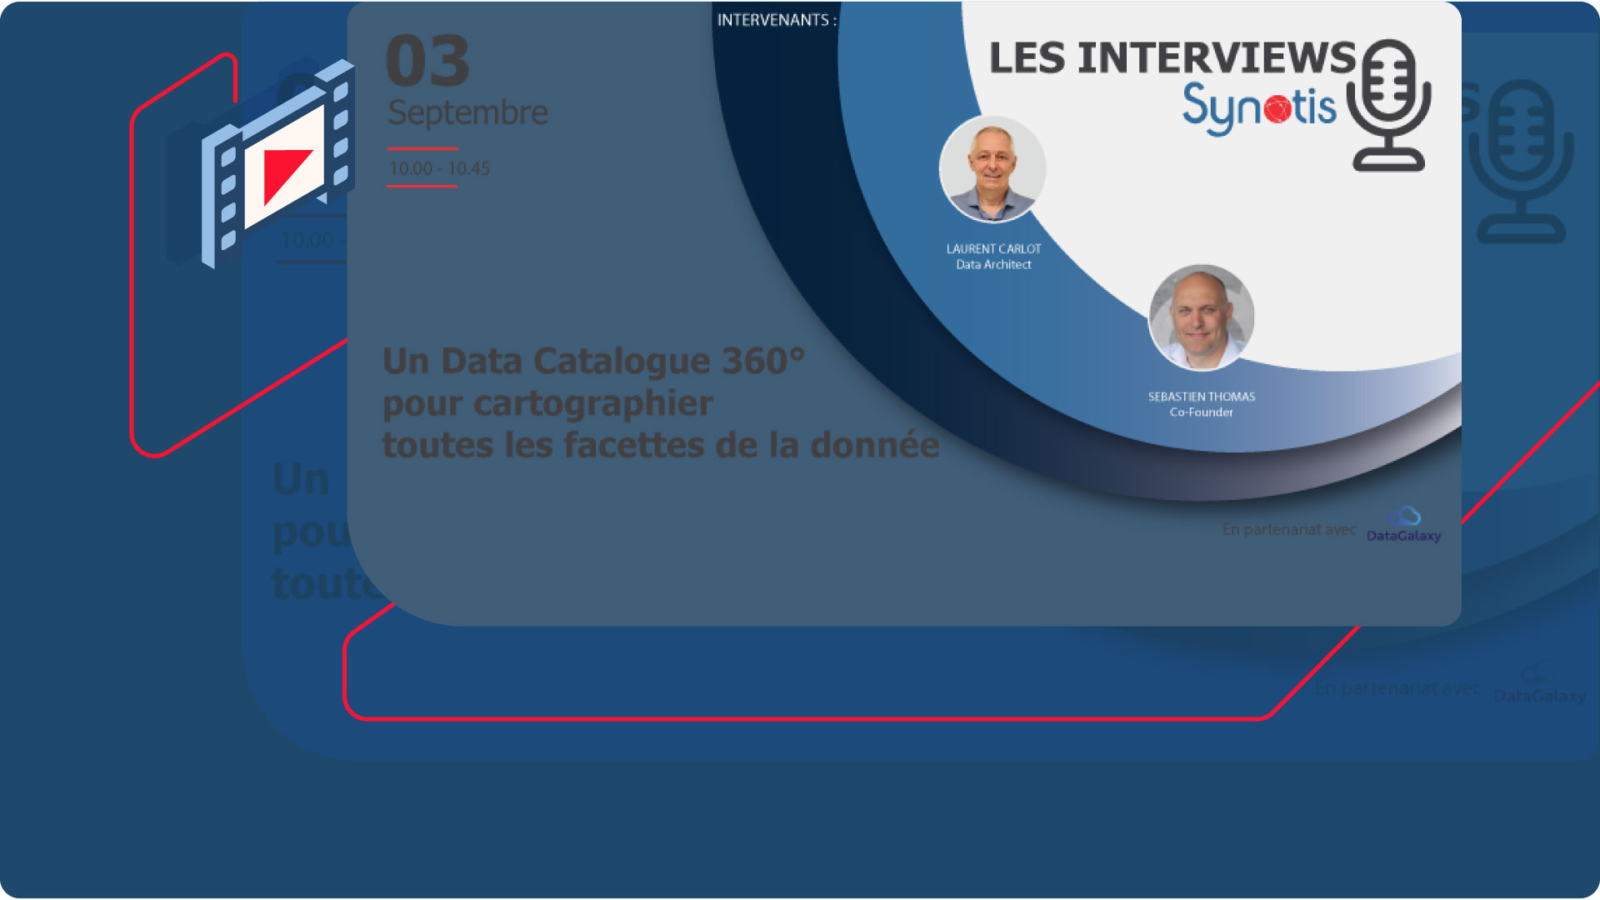 Blog-Poster-interview-datagalaxy